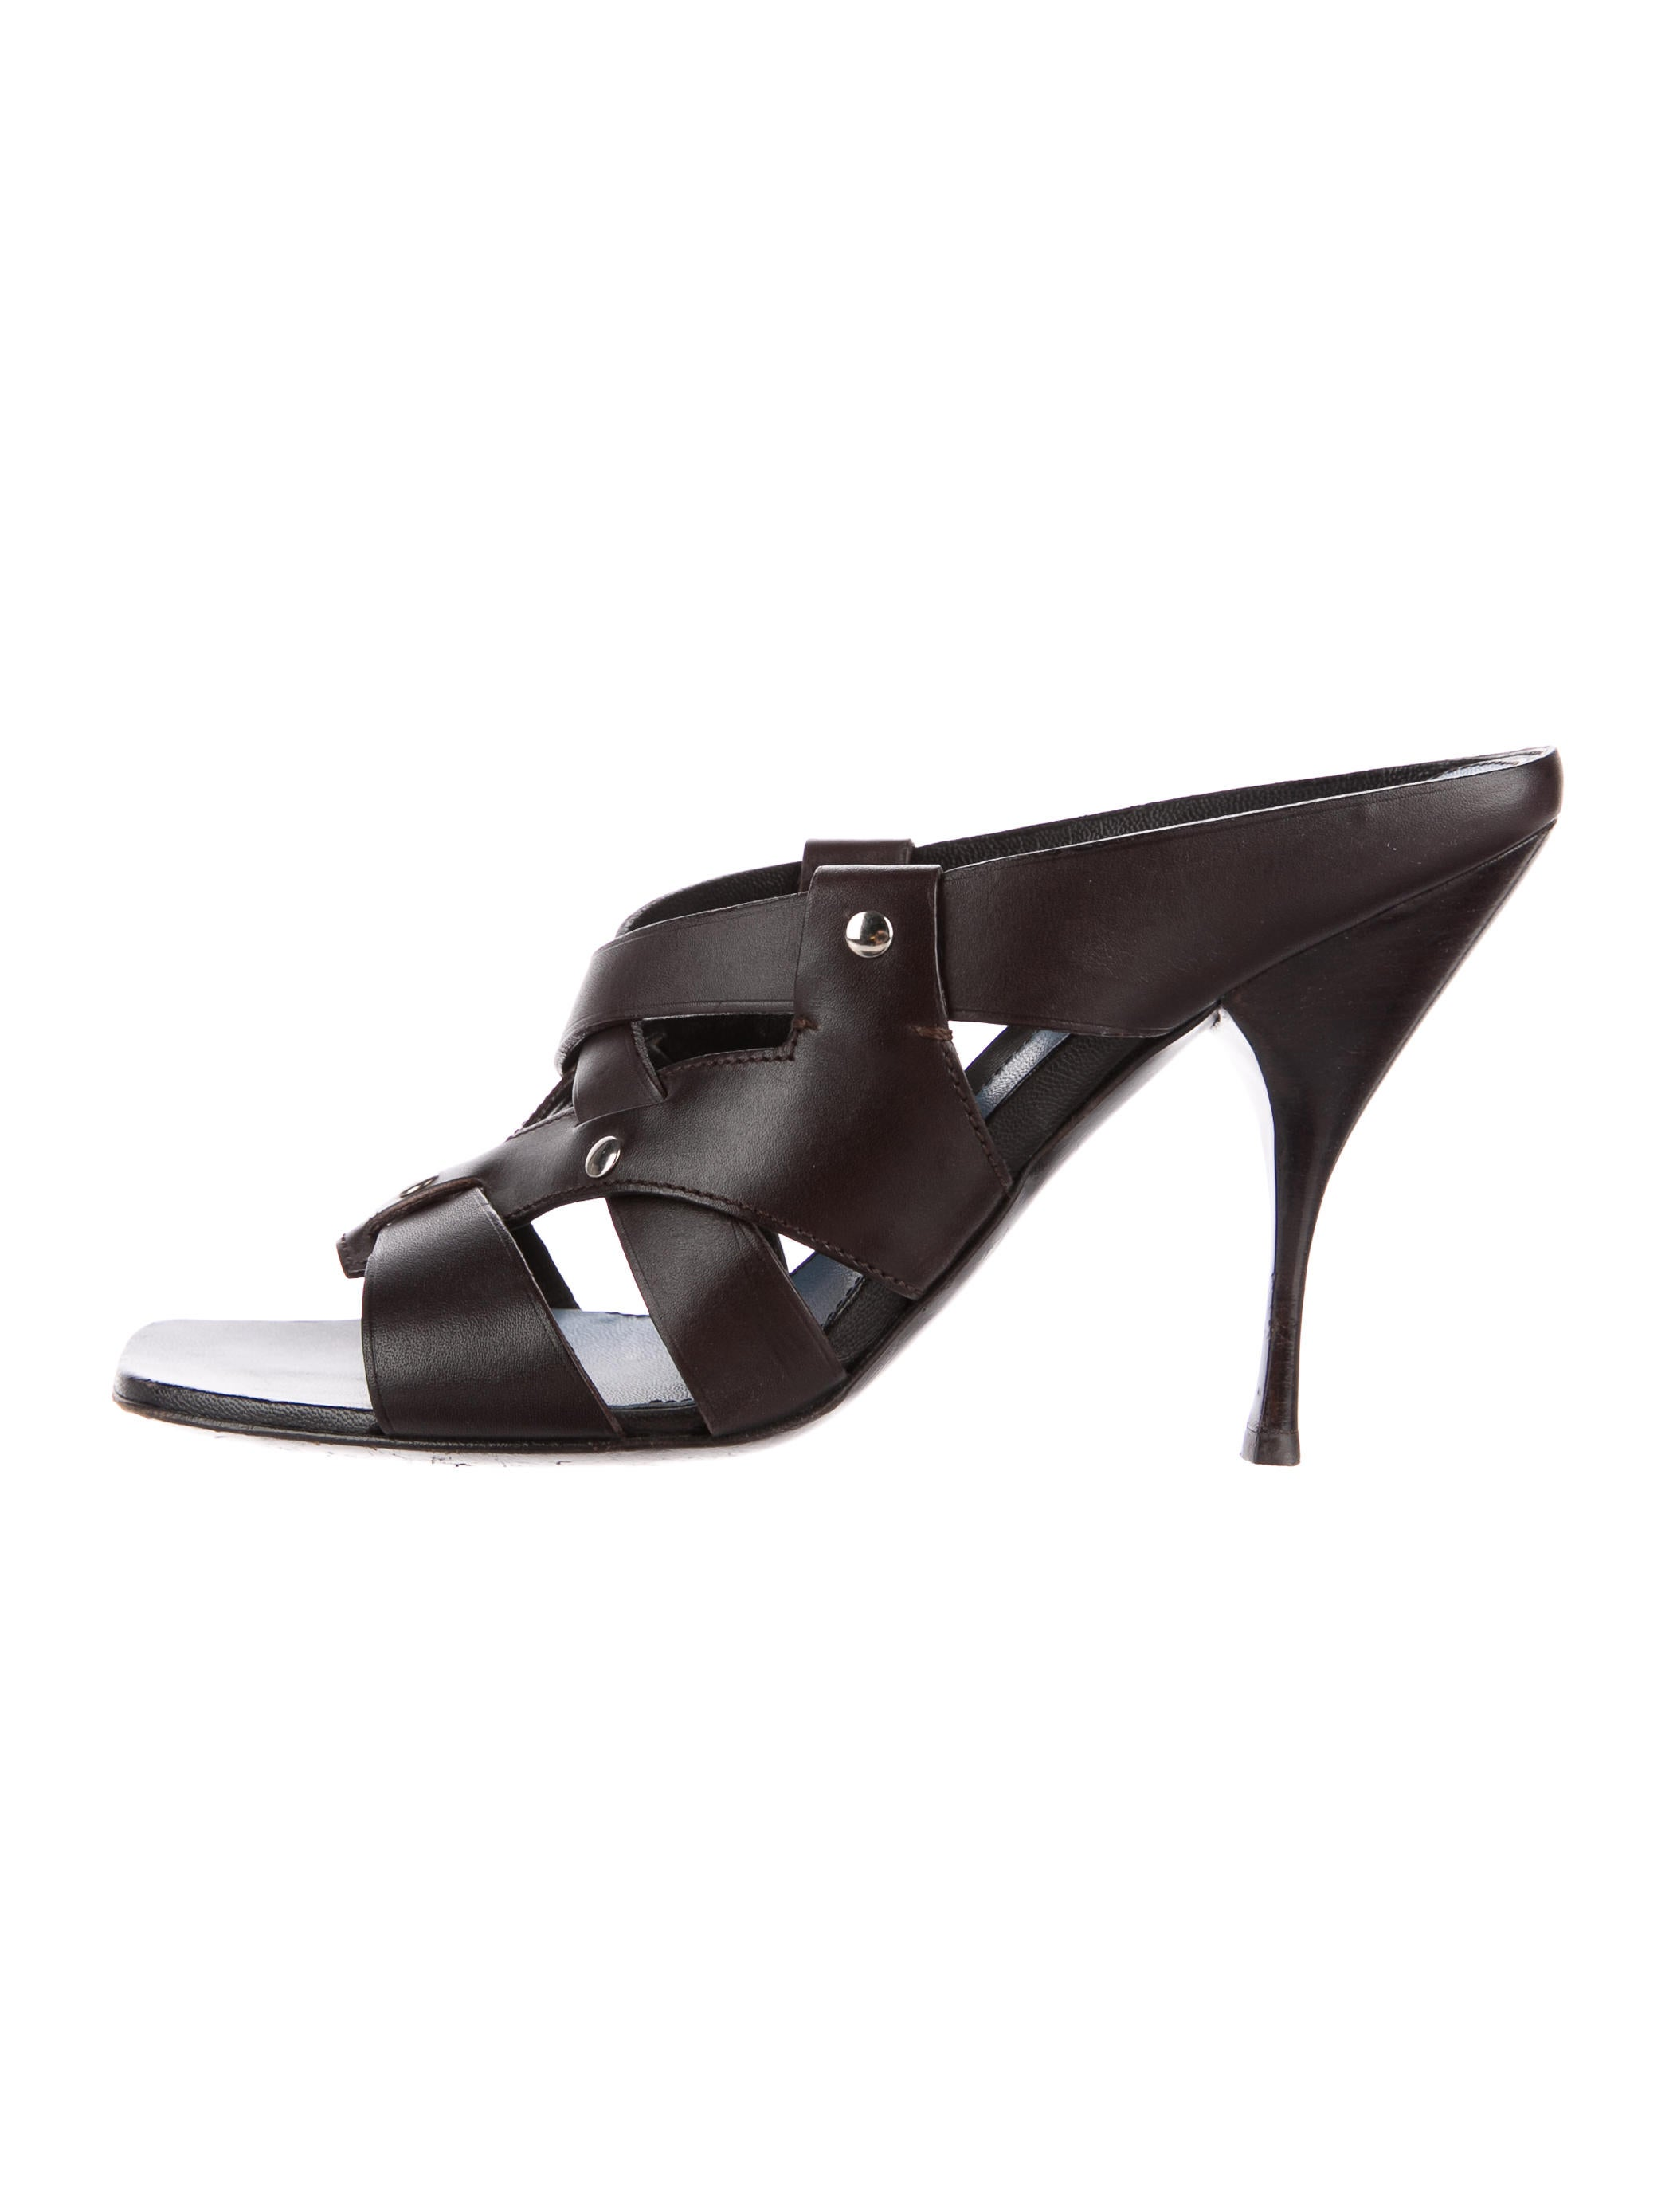 cheap prices Prada Multistrap Slide Sandals sale free shipping for sale finishline ew8CFb